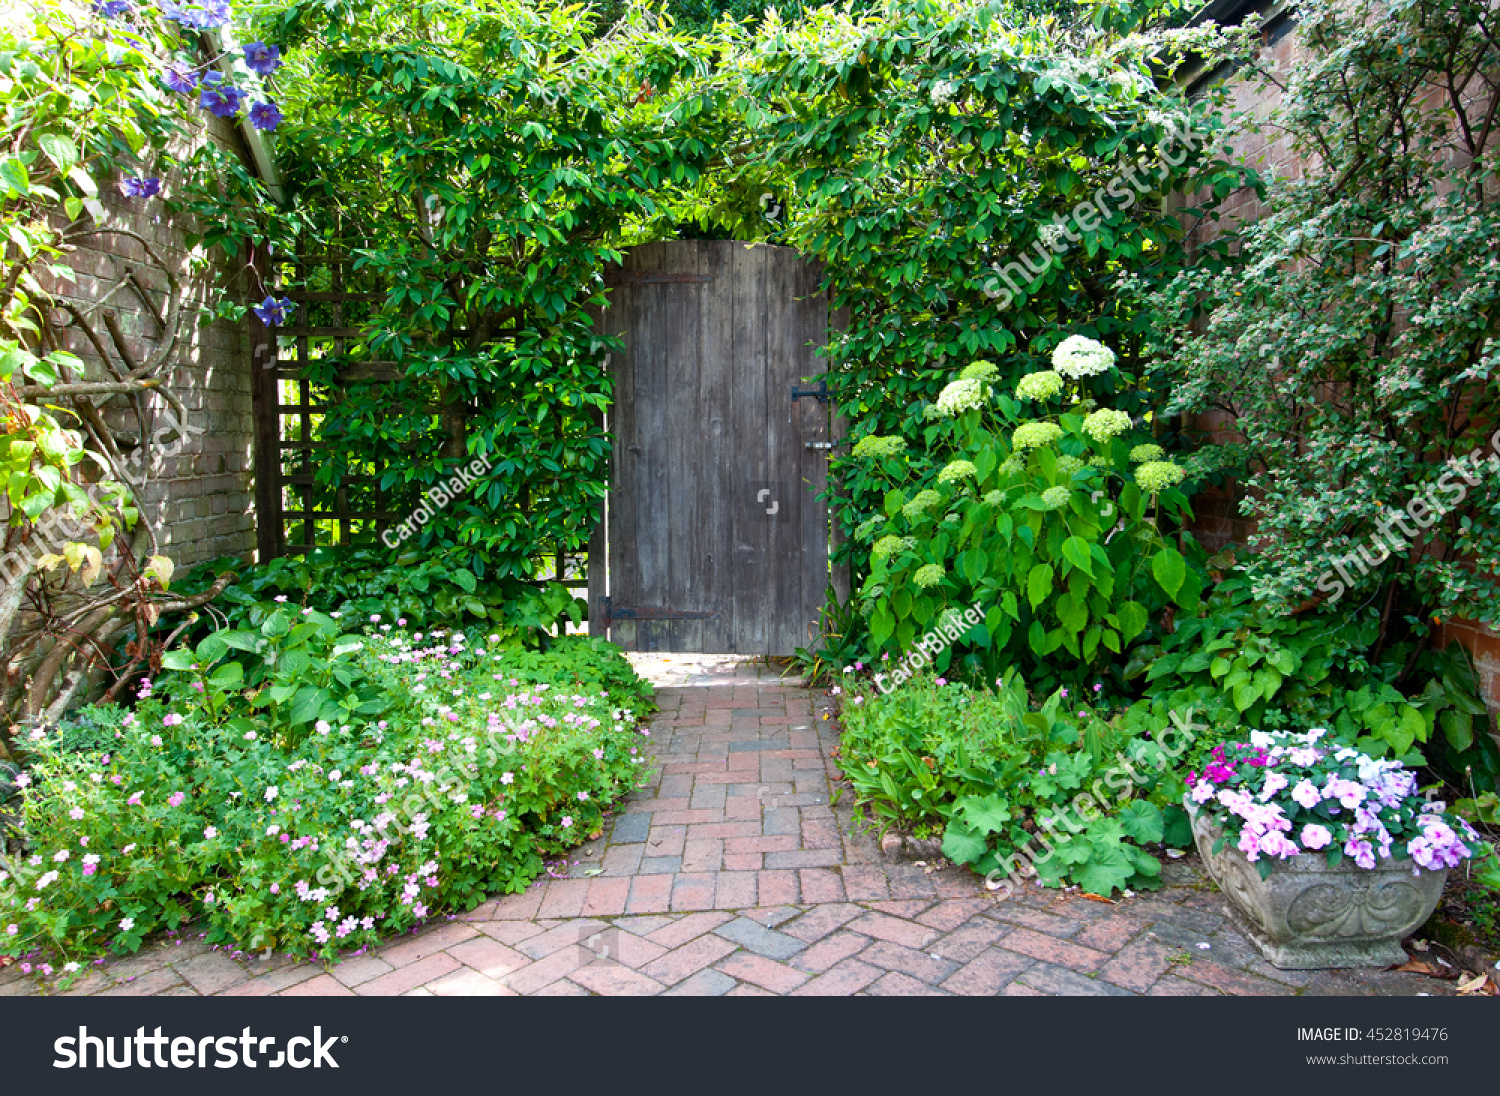 Garden doorway surrounded by flowers herbs and climbing plants with brick paving path. & Garden Doorway Surrounded By Flowers Herbs Stock Photo 452819476 ...